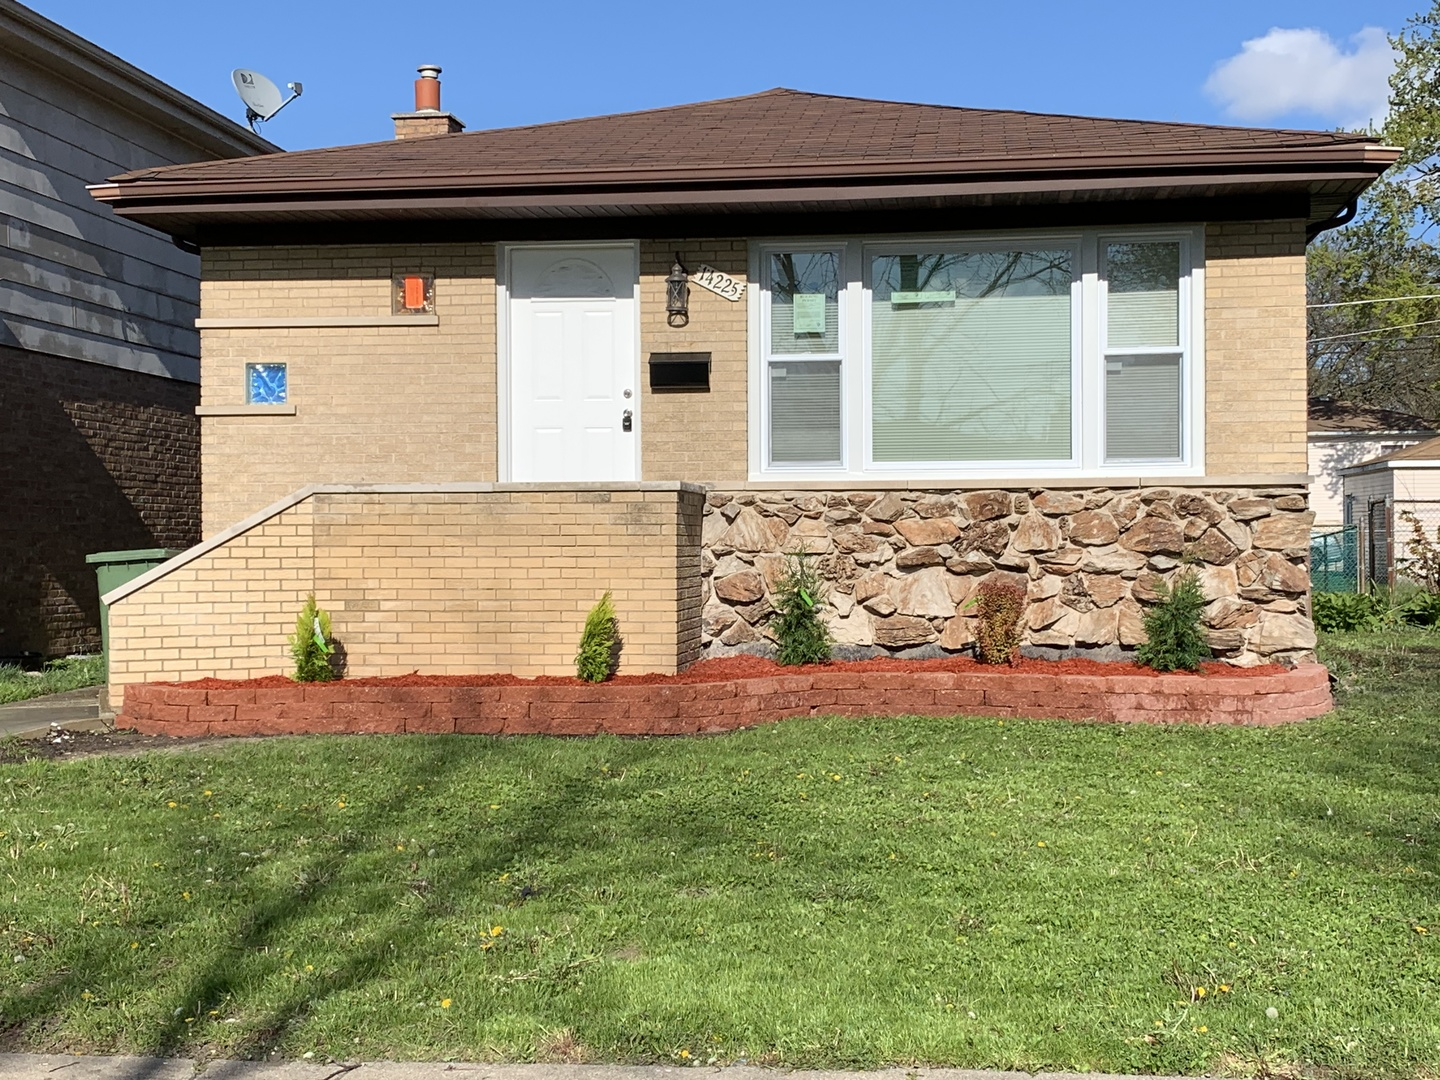 JUST COMPLETED! Beautifully Remodeled, Spacious all Brick Raised Ranch with tons of space for family